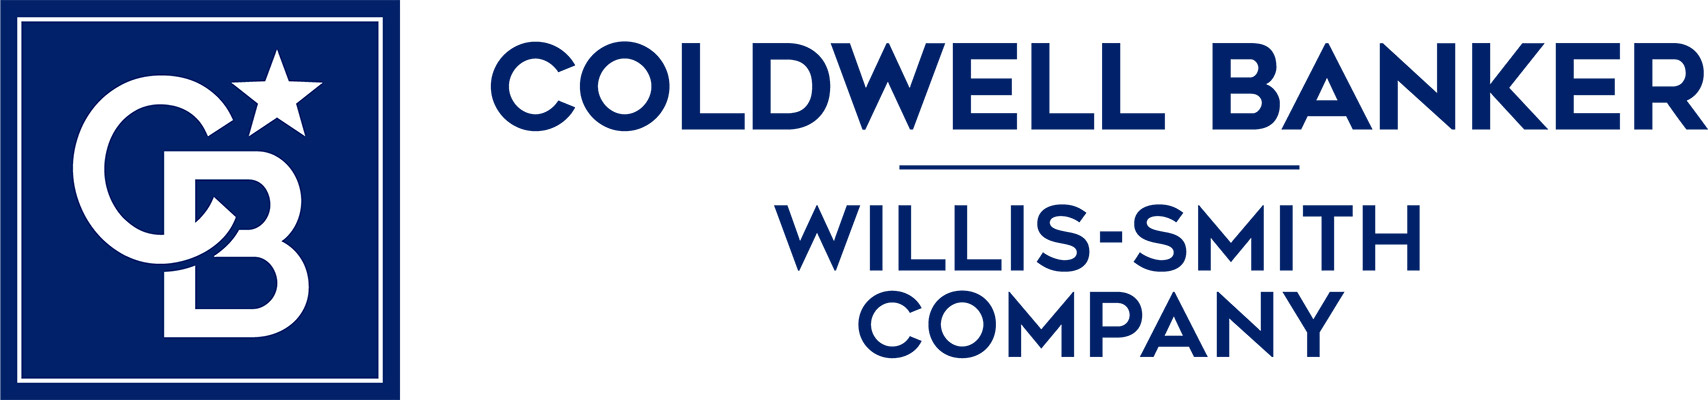 Coldwell Banker Willis-Smith